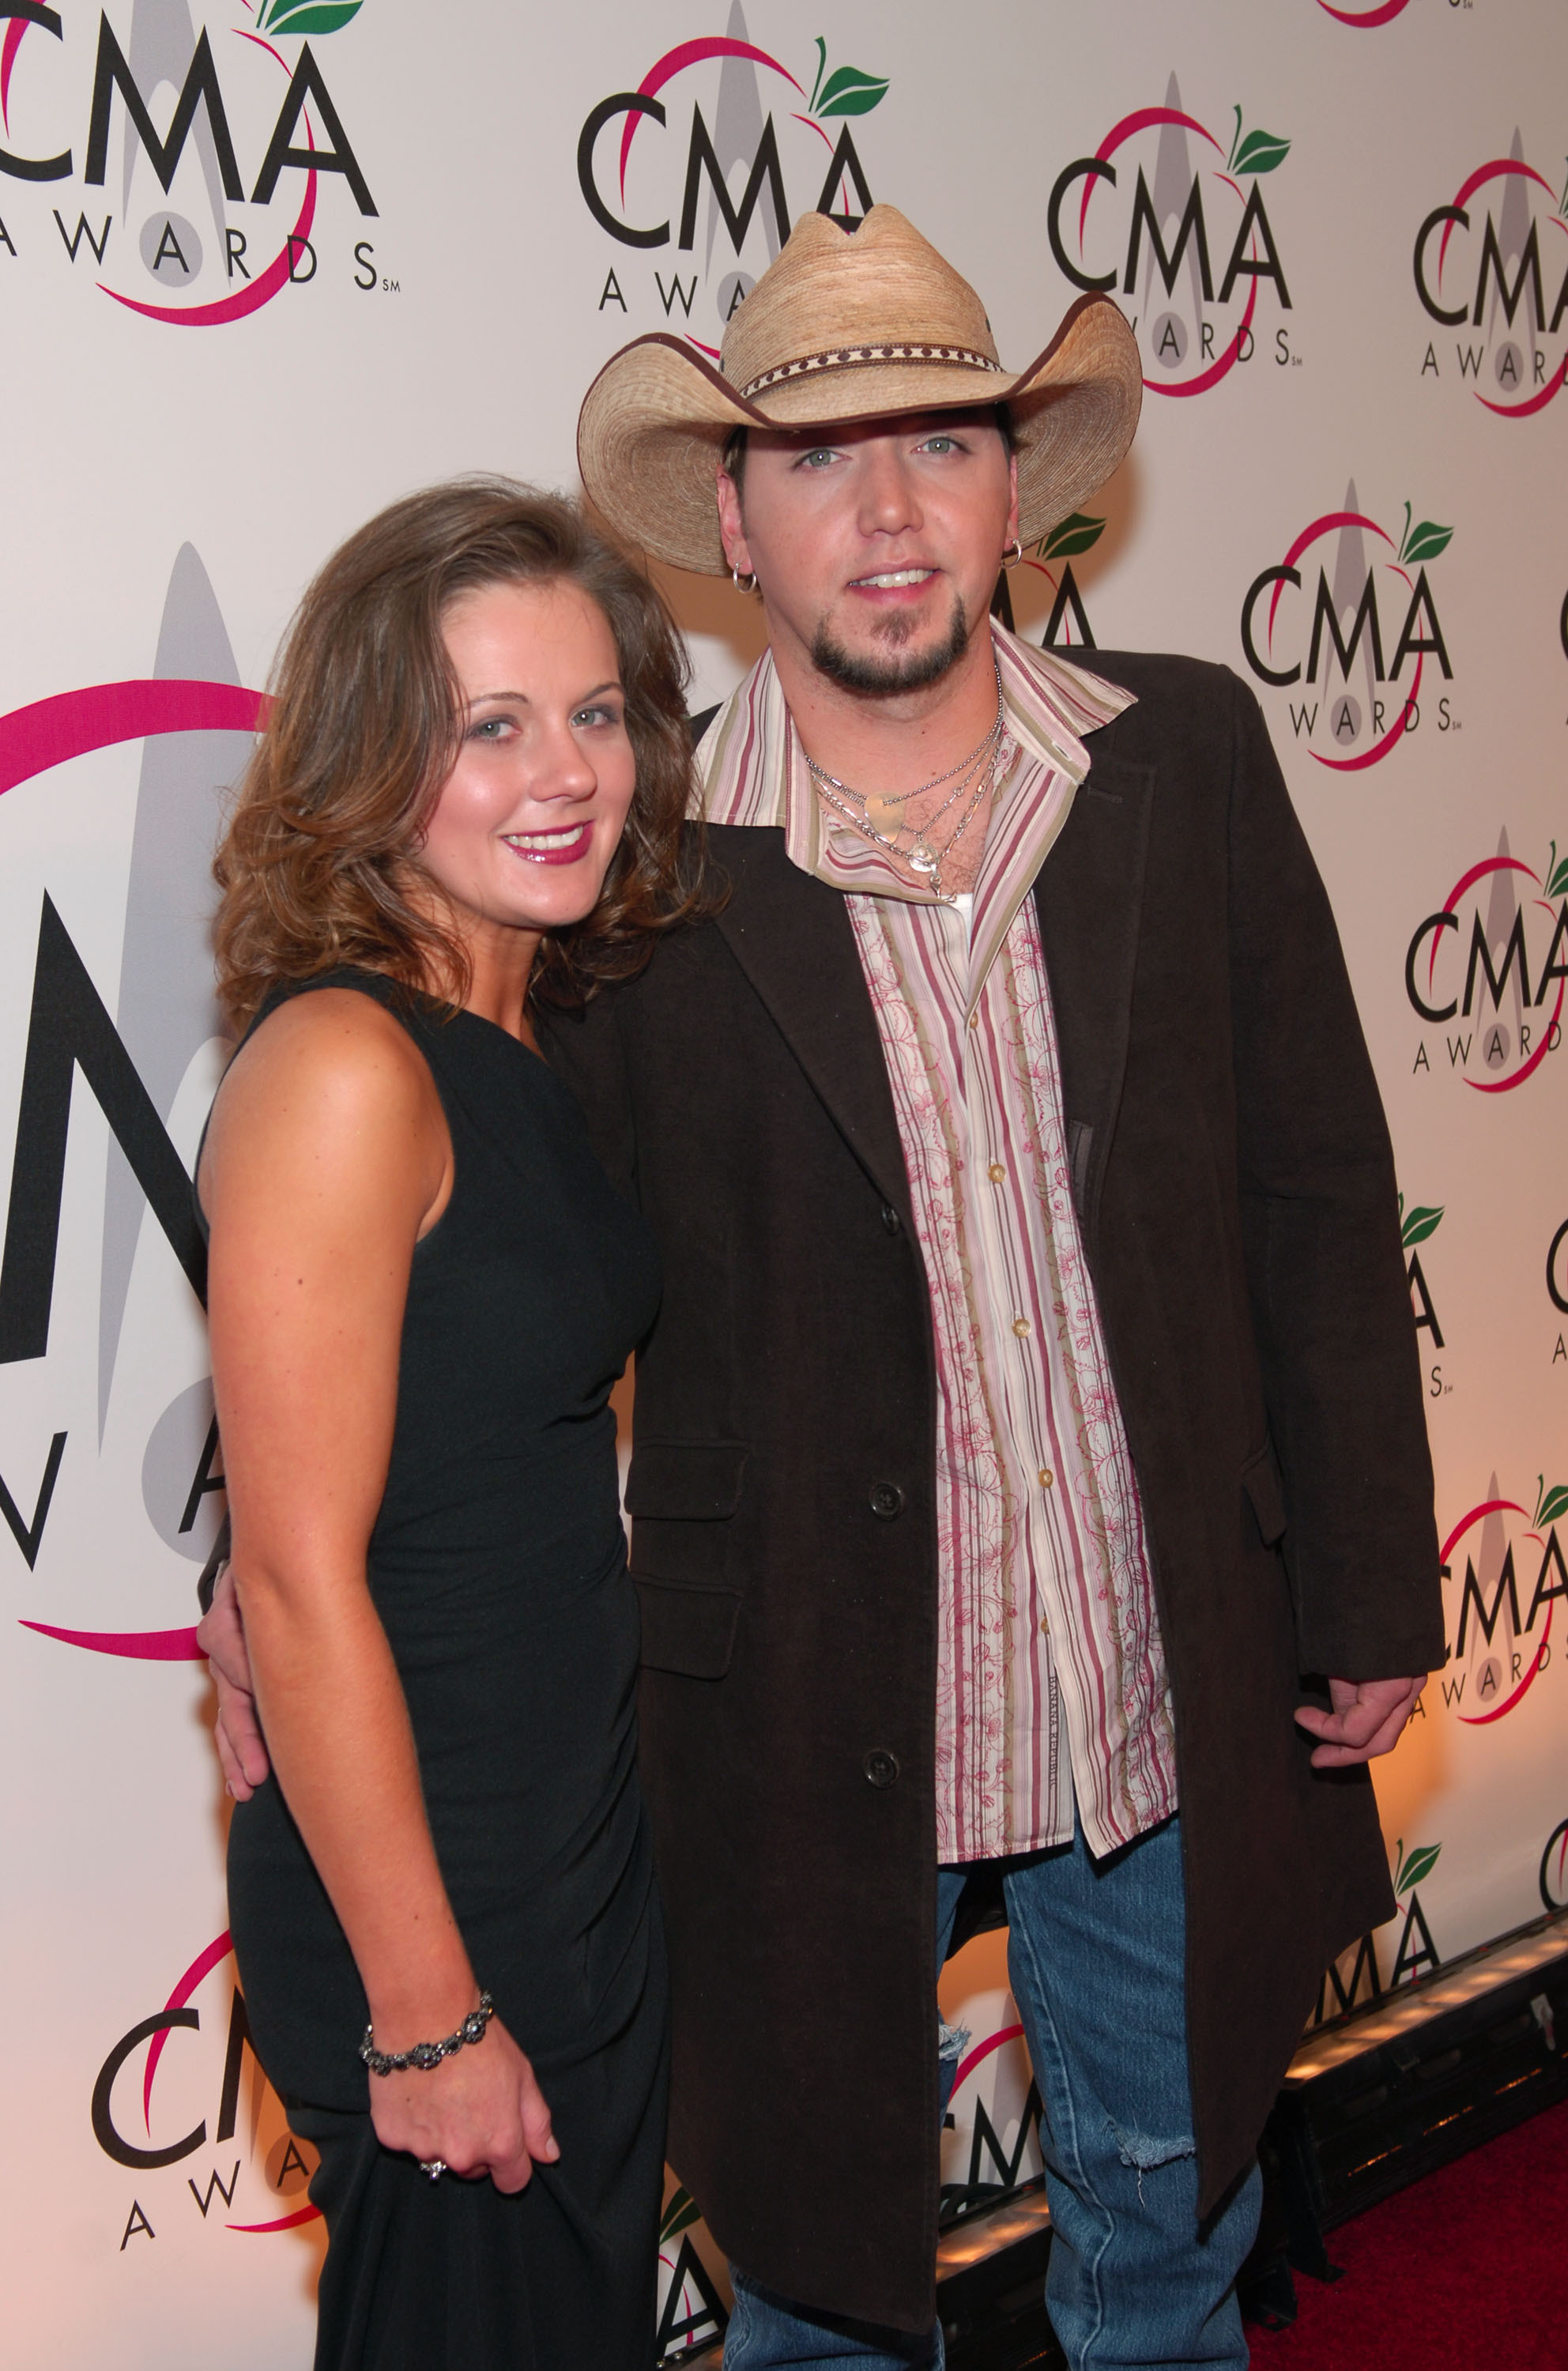 Jason Aldean and then wife Jessica Ussery attend the 39th Annual CMA Awards at Madison Square Garden in New York City on Nov. 15, 2005.